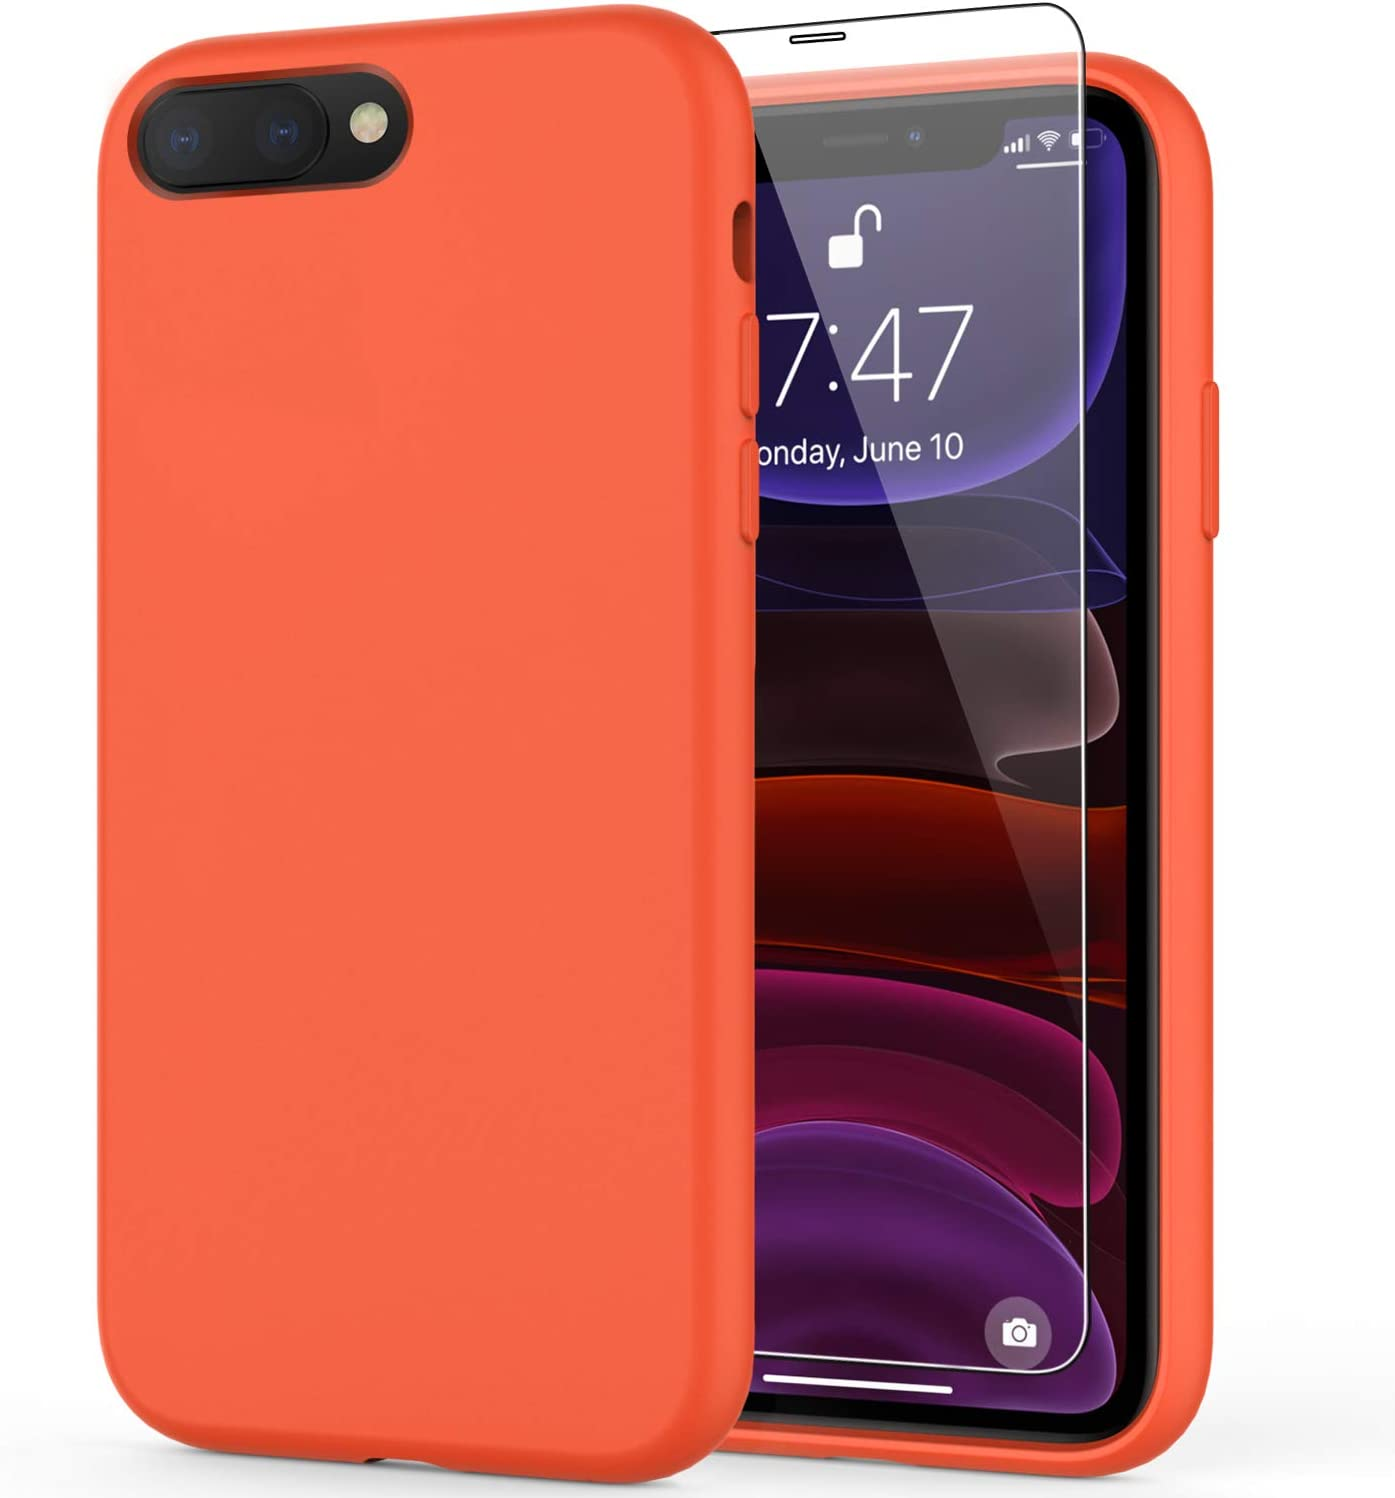 DEENAKIN iPhone 8 Plus Case,iPhone 7 Plus Case with Screen Protector,Soft Liquid Silicone Gel Rubber Bumper Cover,Slim Fit Shockproof Protective Phone Case for iPhone 7 Plus/iPhone 8 Plus Orange